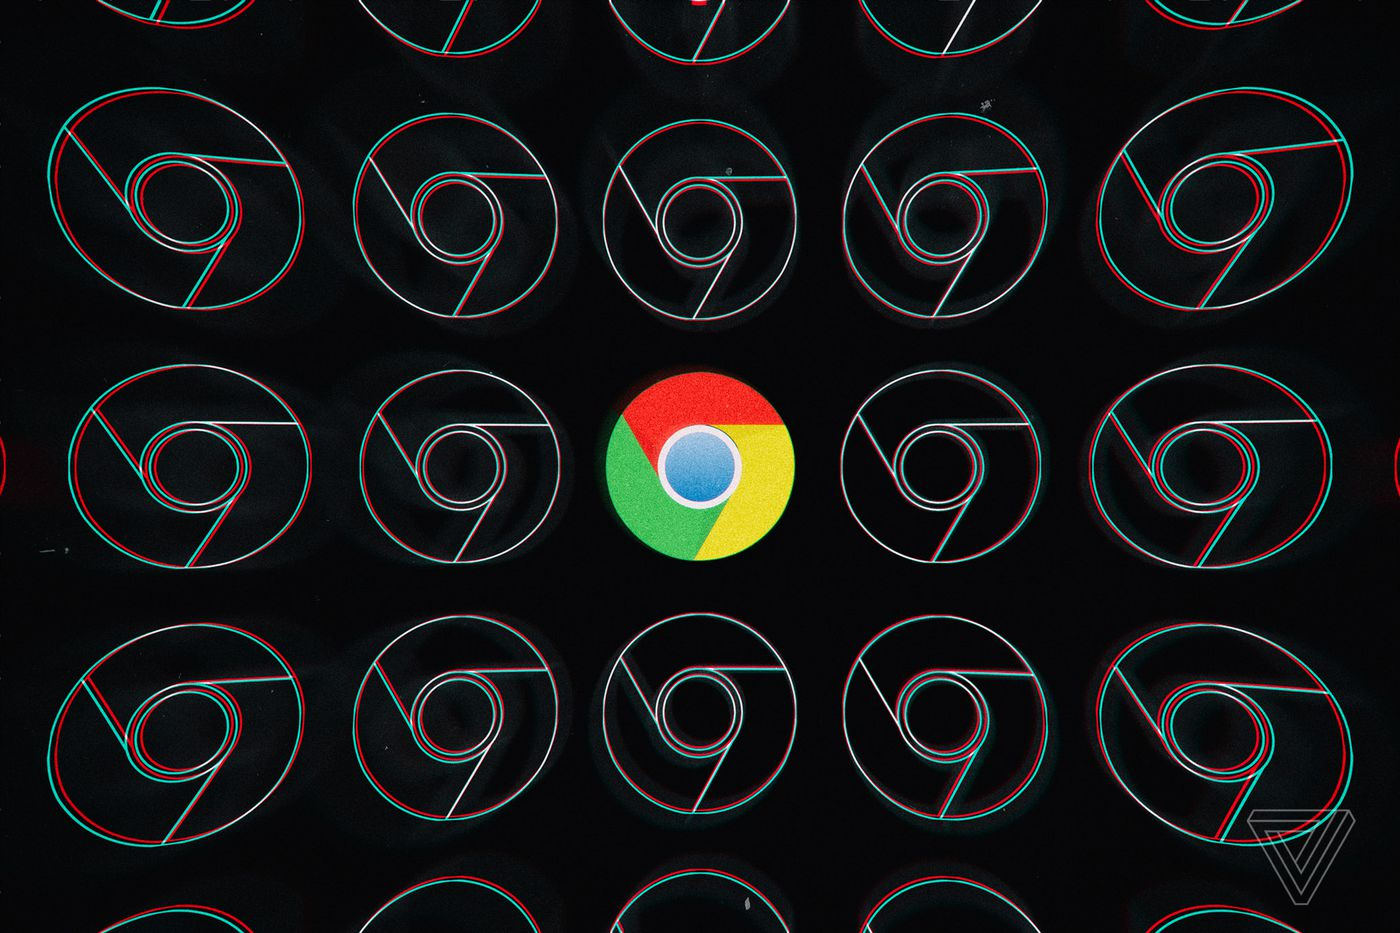 How To Enable Google Chrome S New Dark Mode On Windows 10 The Verge